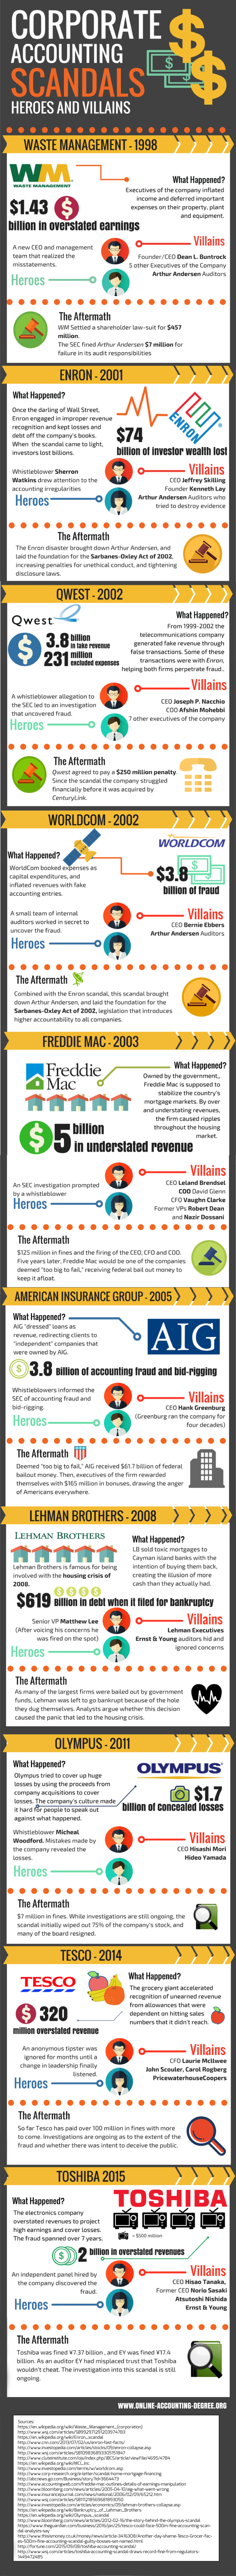 10 of the Biggest Corporate Accounting Scandals of All Time